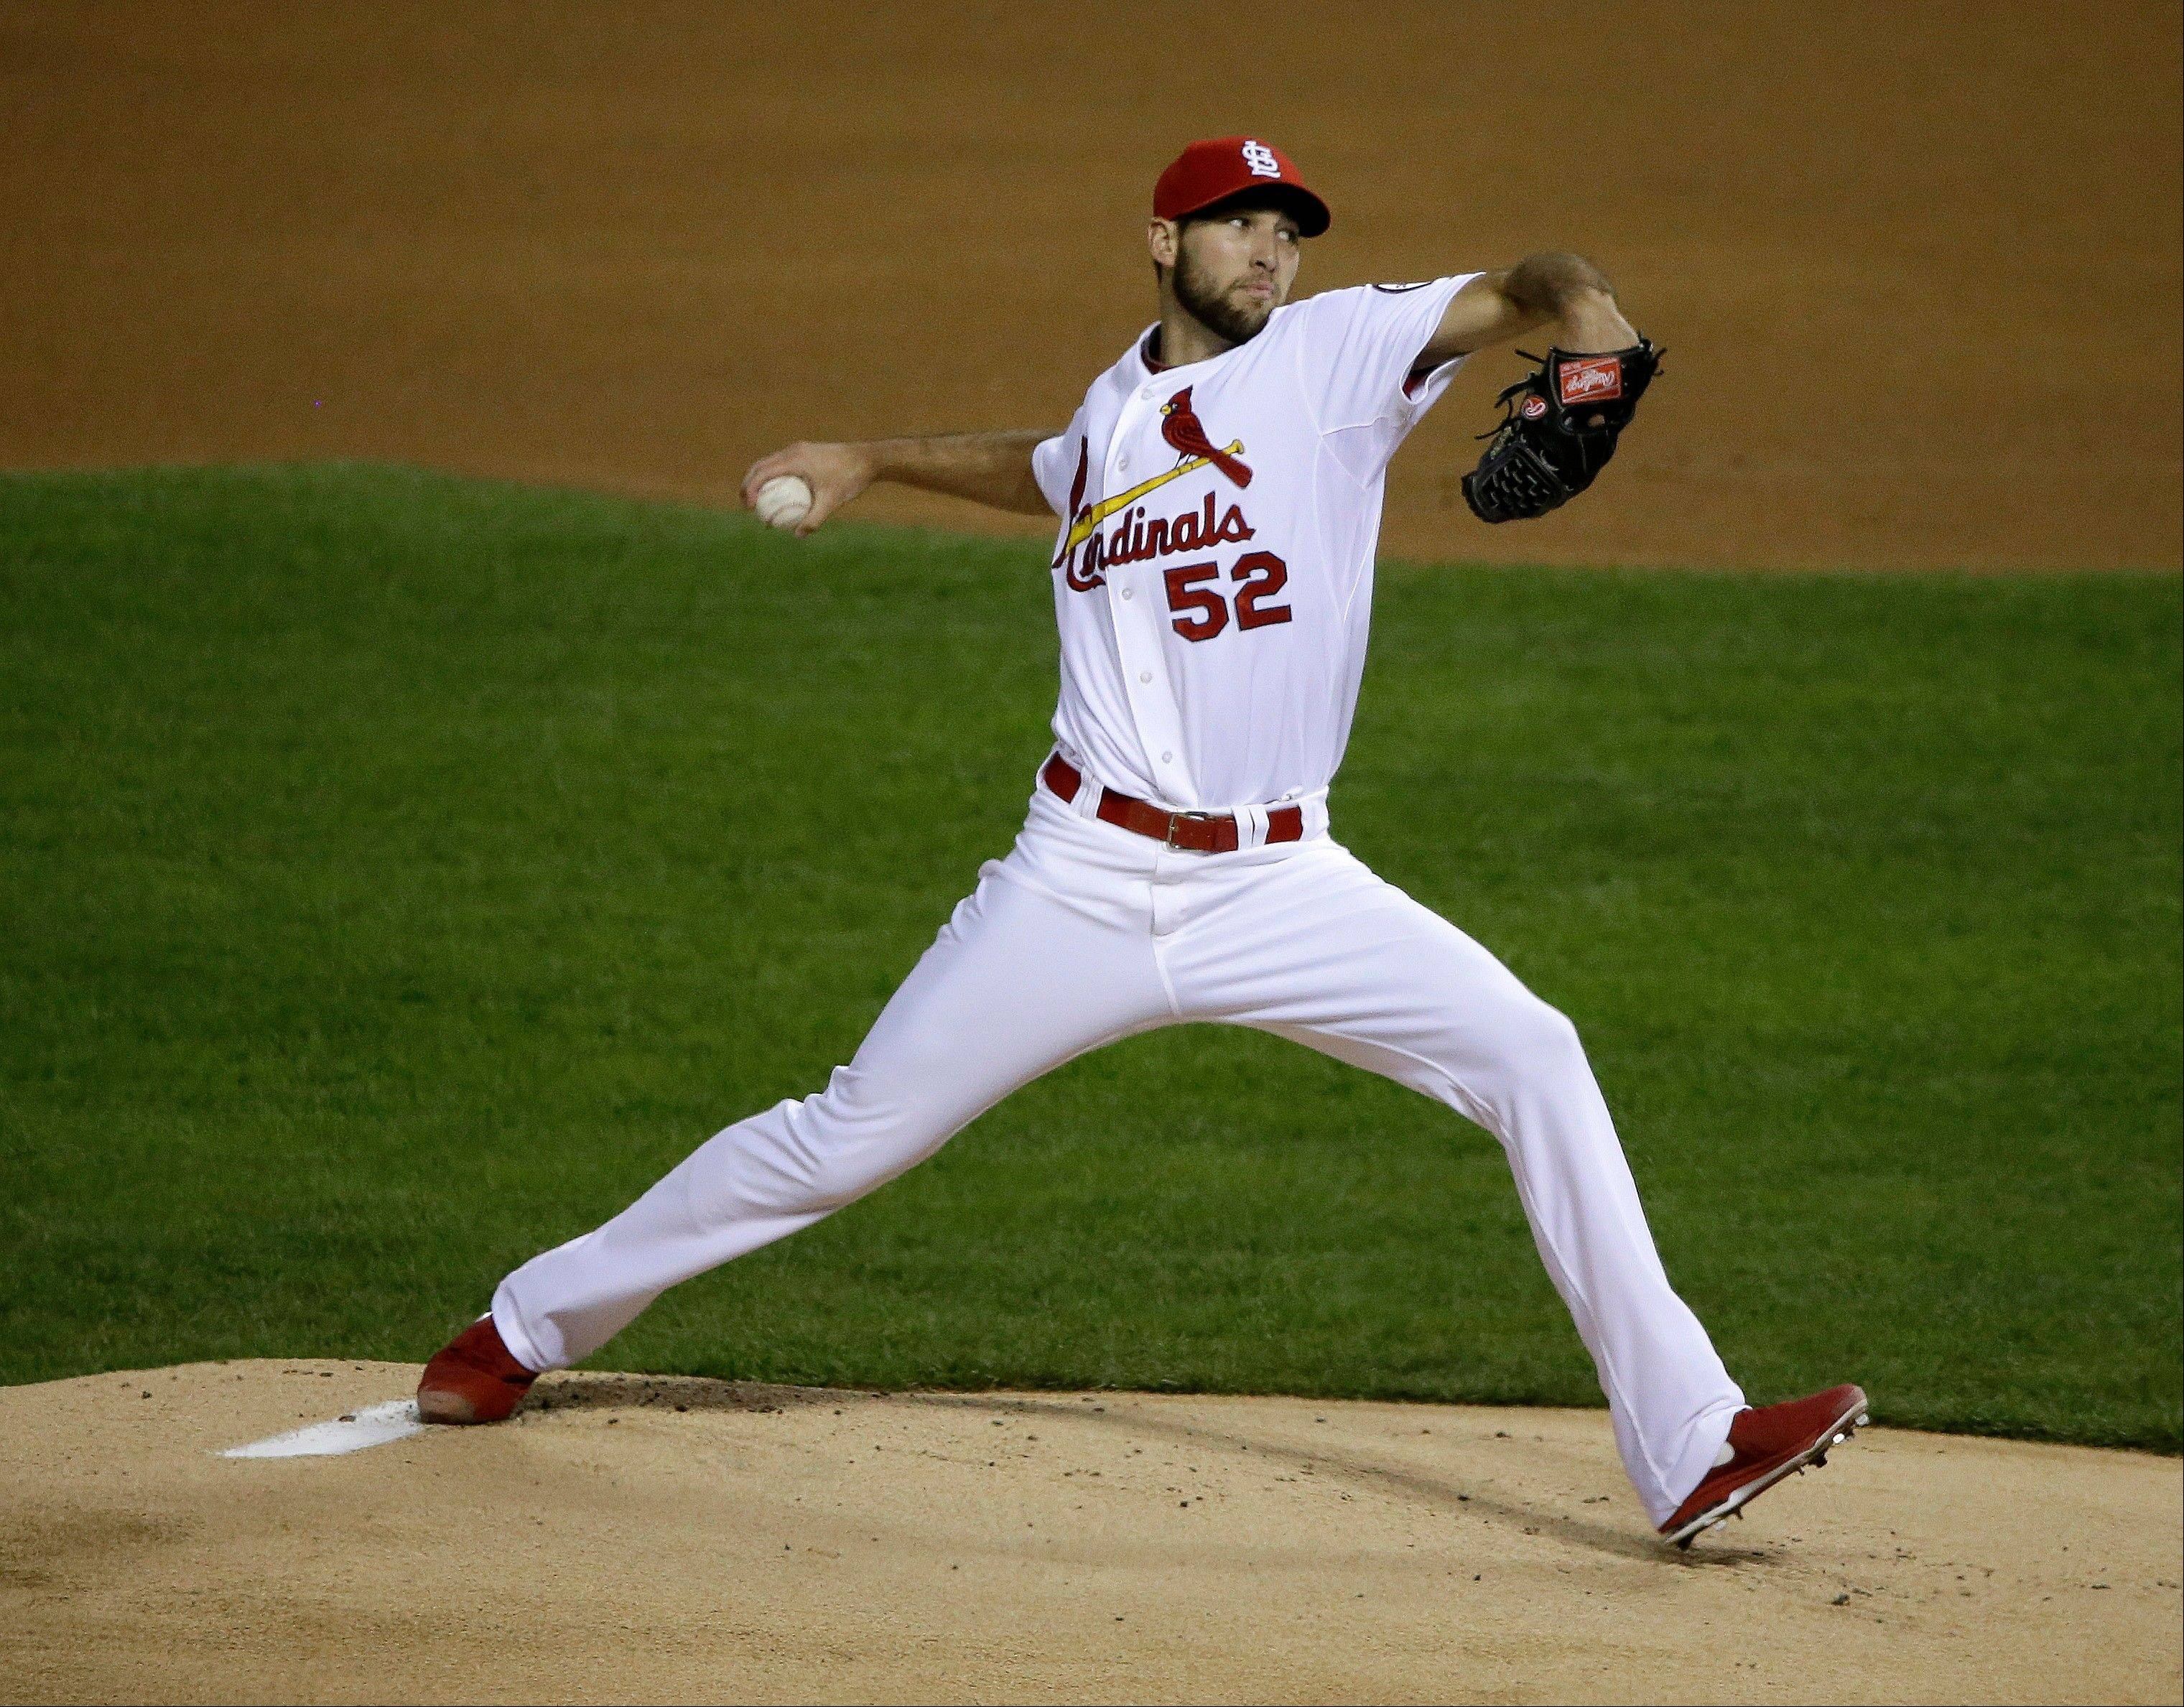 Cardinals rookie Michael Wacha throws during the first inning of Game 6 of the National League Championship Series against the Dodgers last Friday.